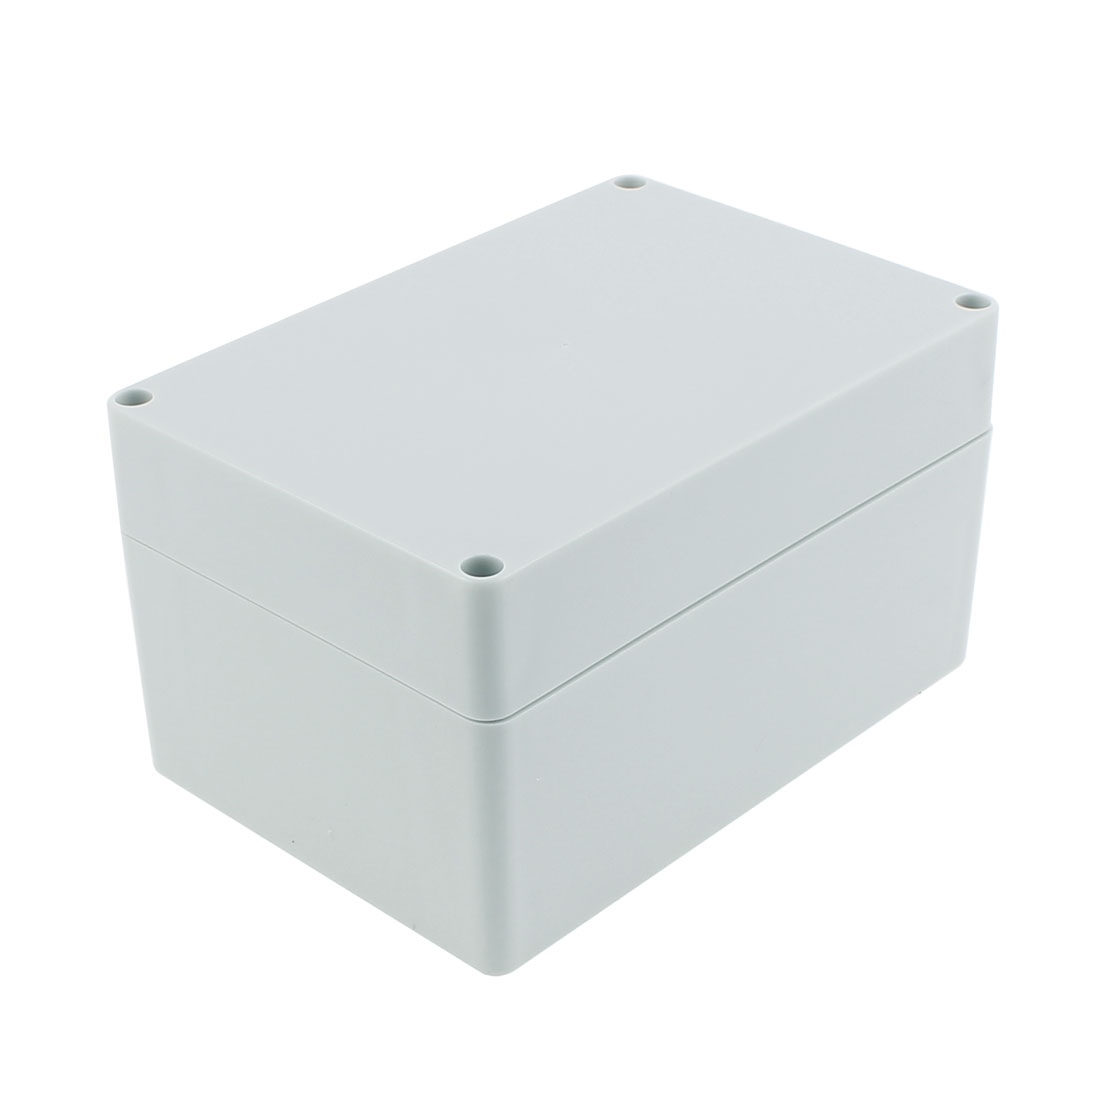 160 x 110 x 90mm Dustproof IP65 Junction Box DIY Terminal Connection Box Enclosure